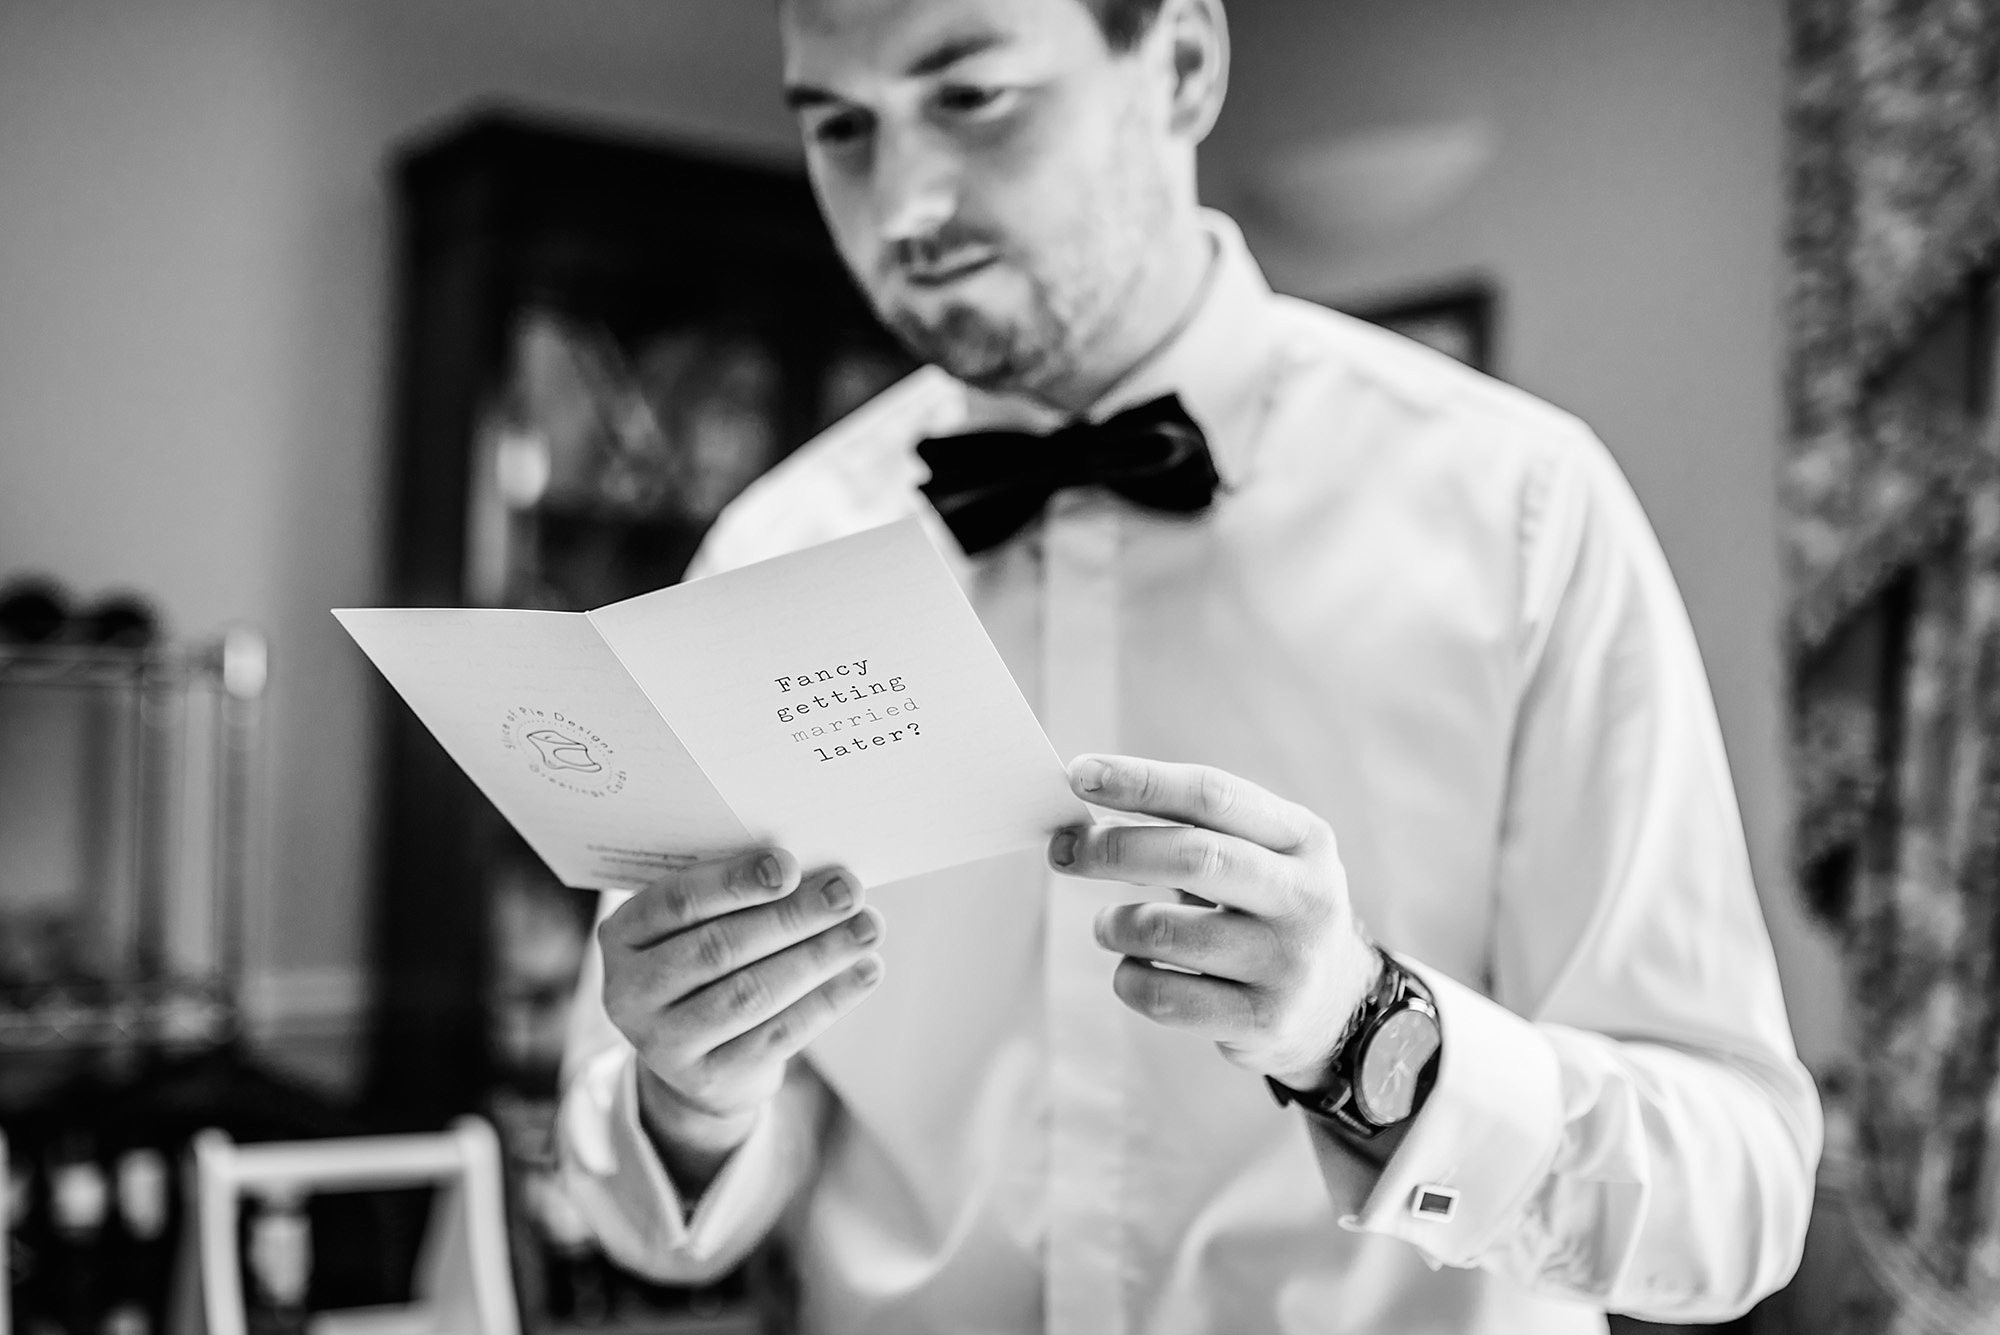 Fun London Wedding groom reads a card from bride